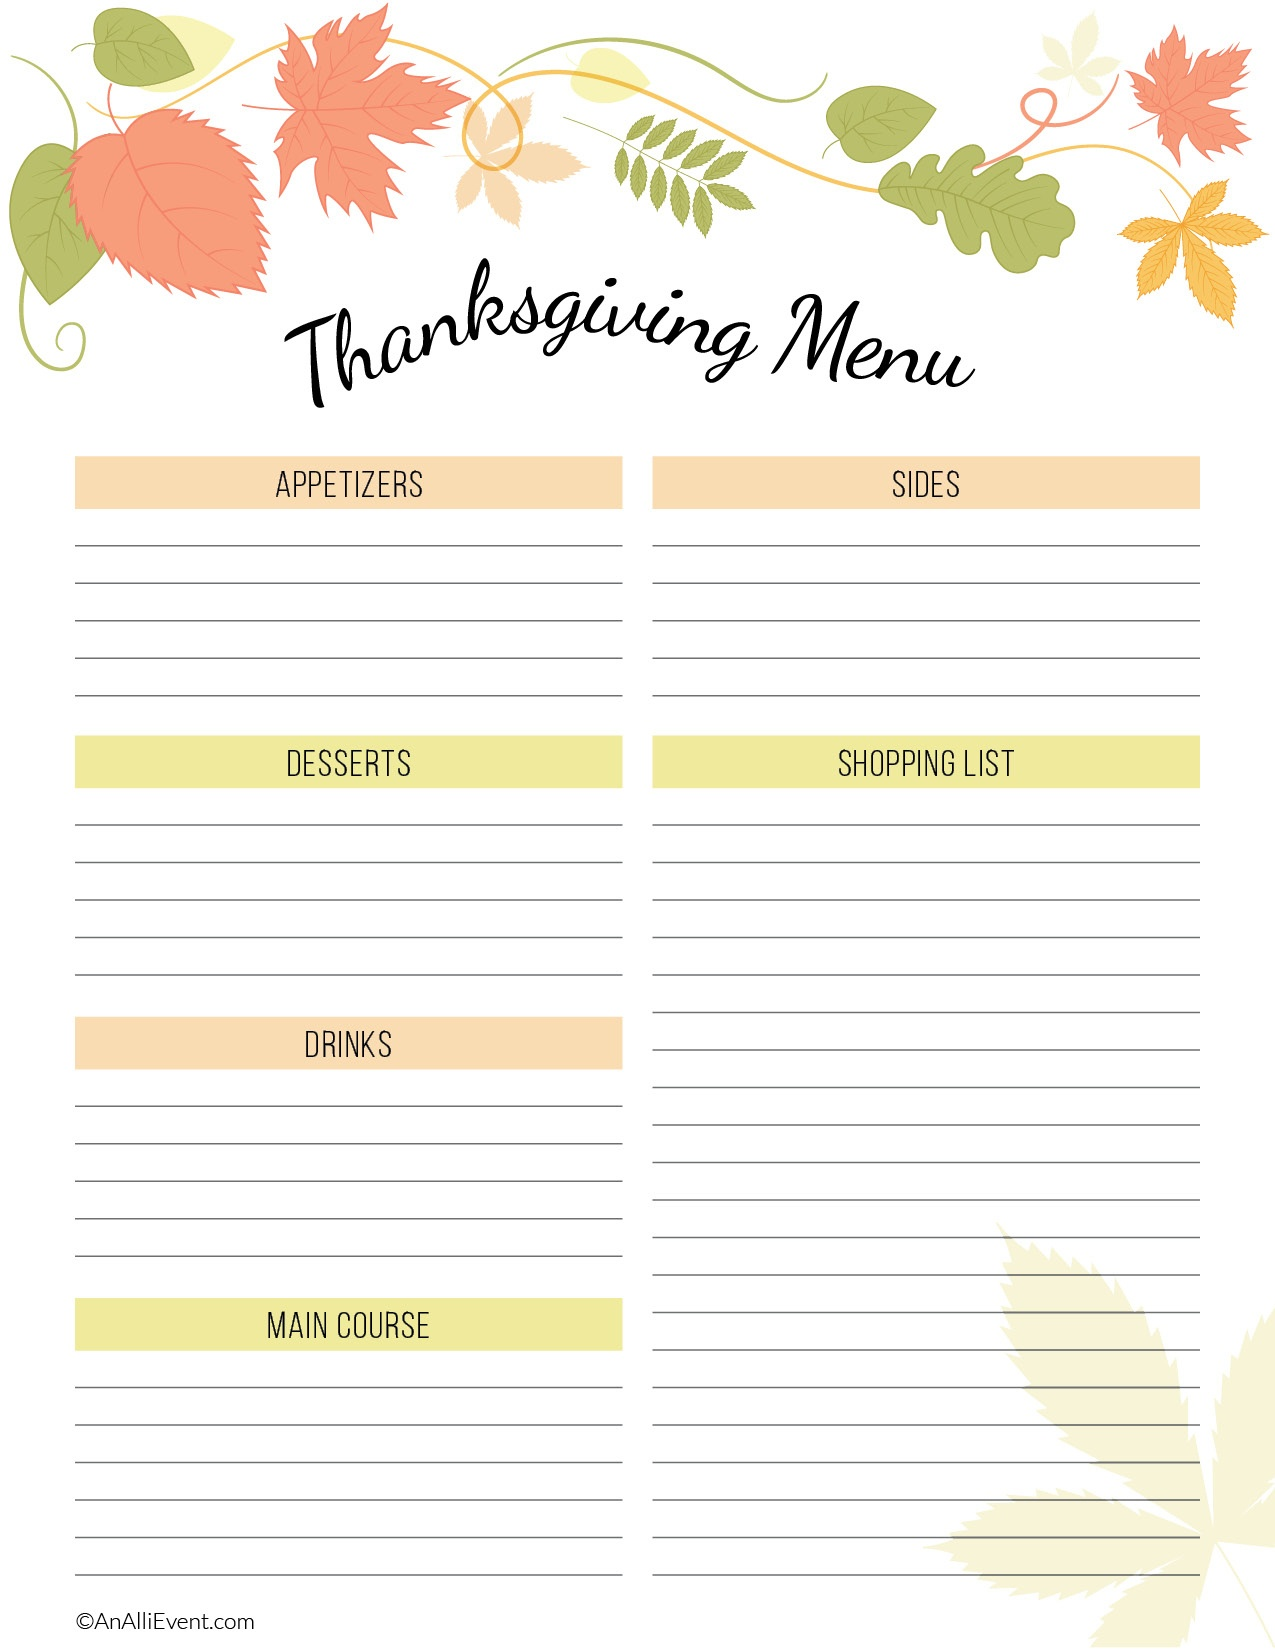 Free Thanksgiving Planner Printable - An Alli Event - Free Printable Thanksgiving Menu Template